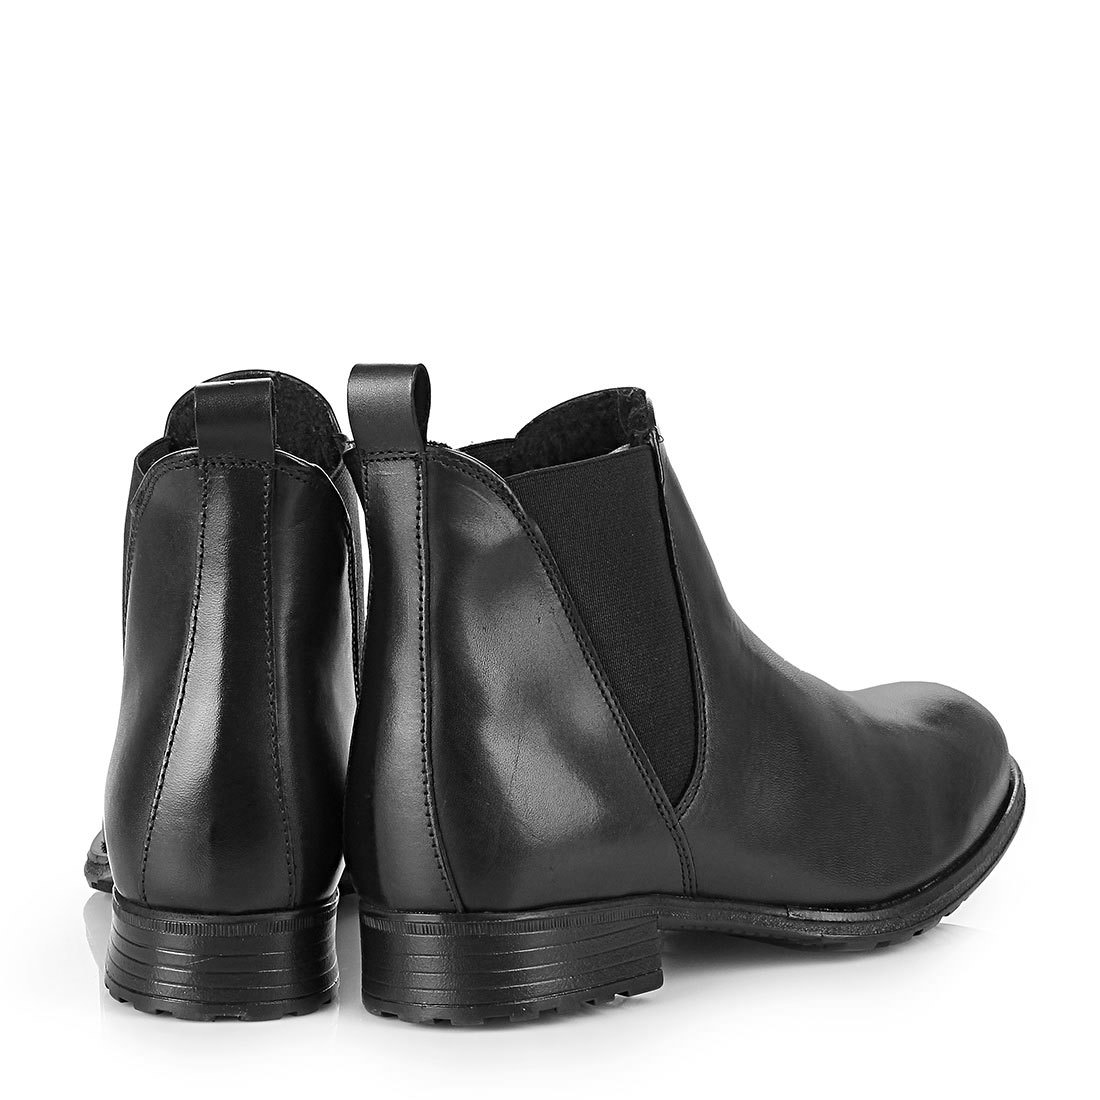 ffacd69306b3b0 Buffalo Chelsea boots in black buy online in BUFFALO Online-Shop ...